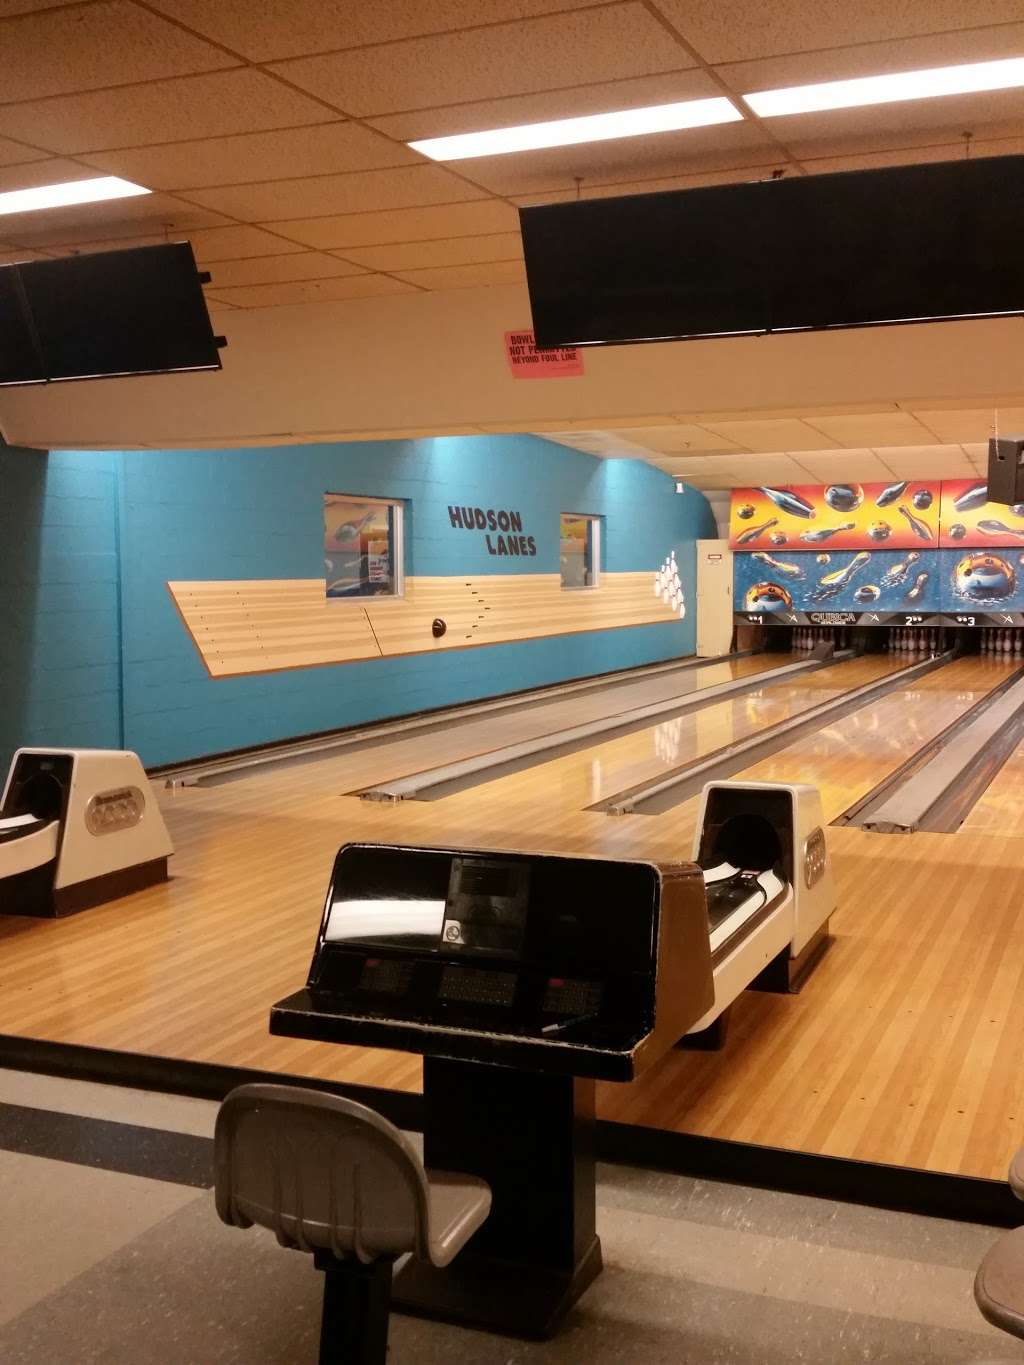 Hudson Lanes - bowling alley  | Photo 10 of 10 | Address: 1 Garfield Ave, Jersey City, NJ 07305, USA | Phone: (201) 432-5900